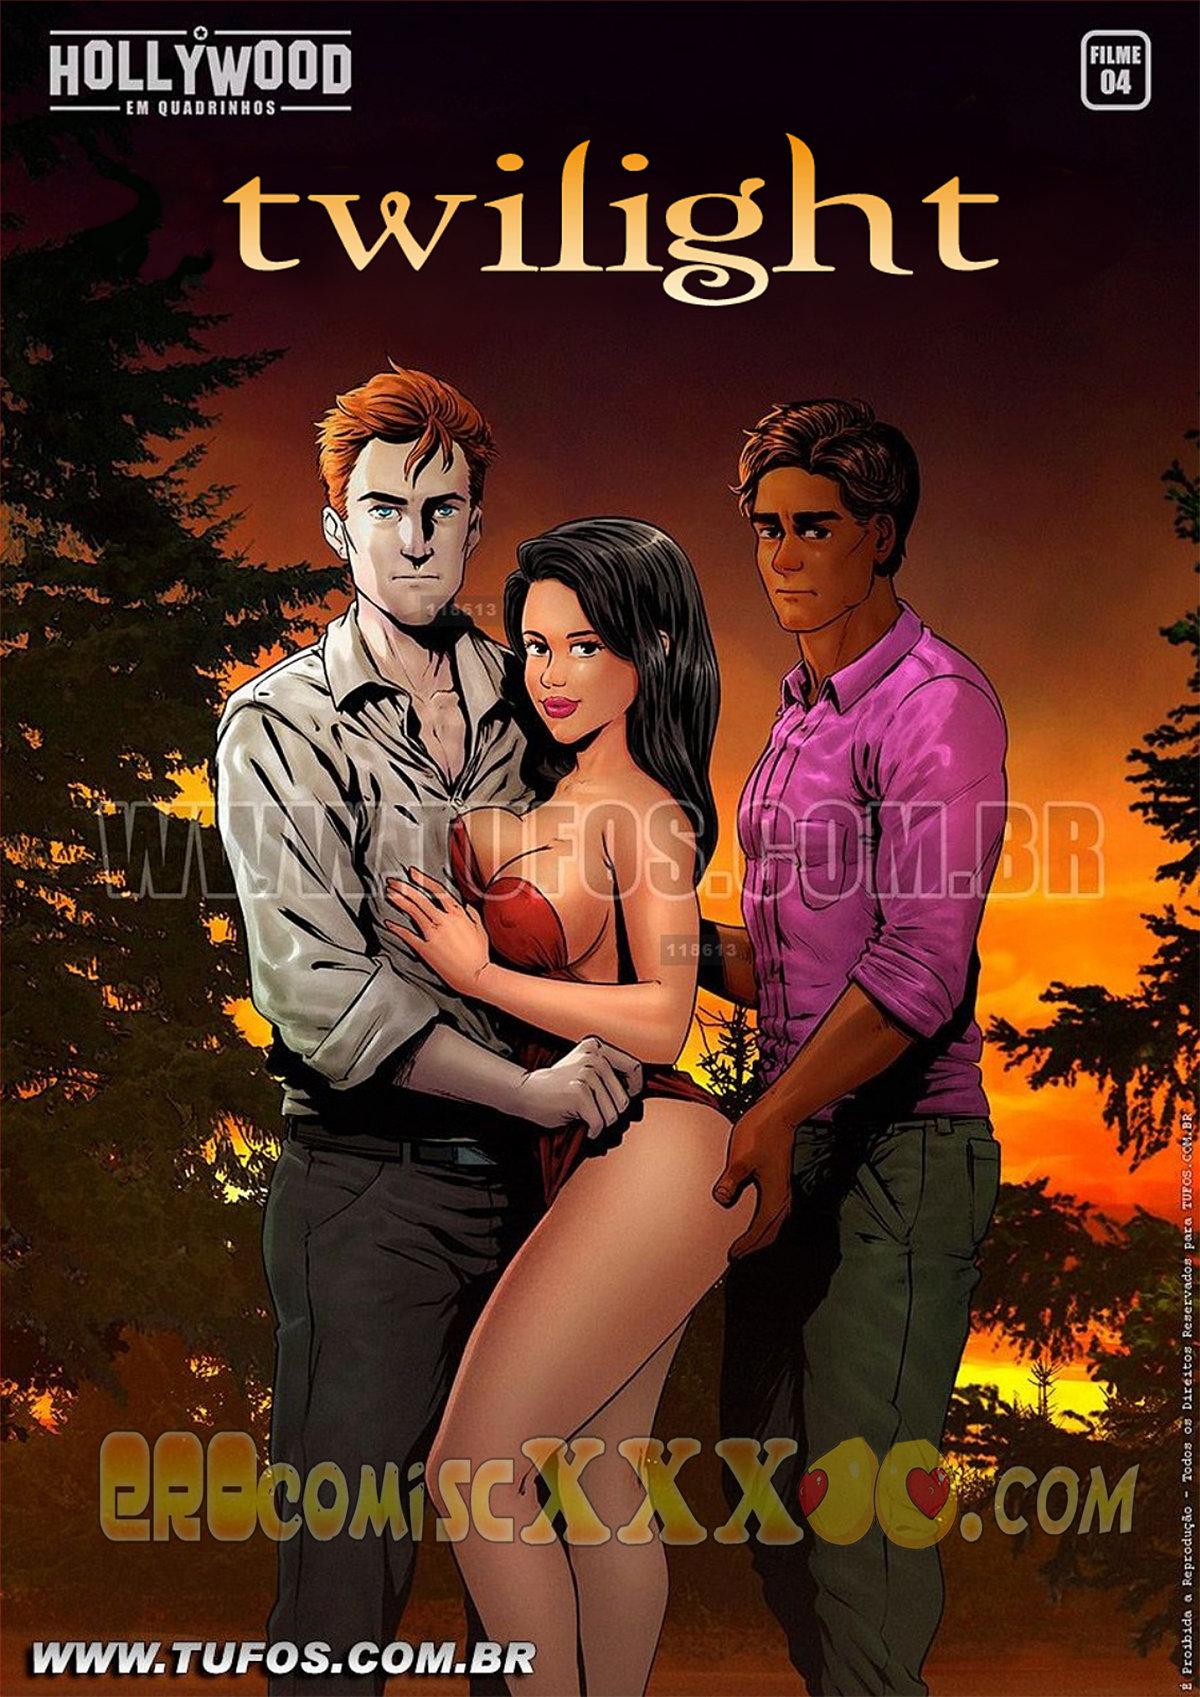 001 2 - In Hollywood Em Quadrinhos 4. Twilight.